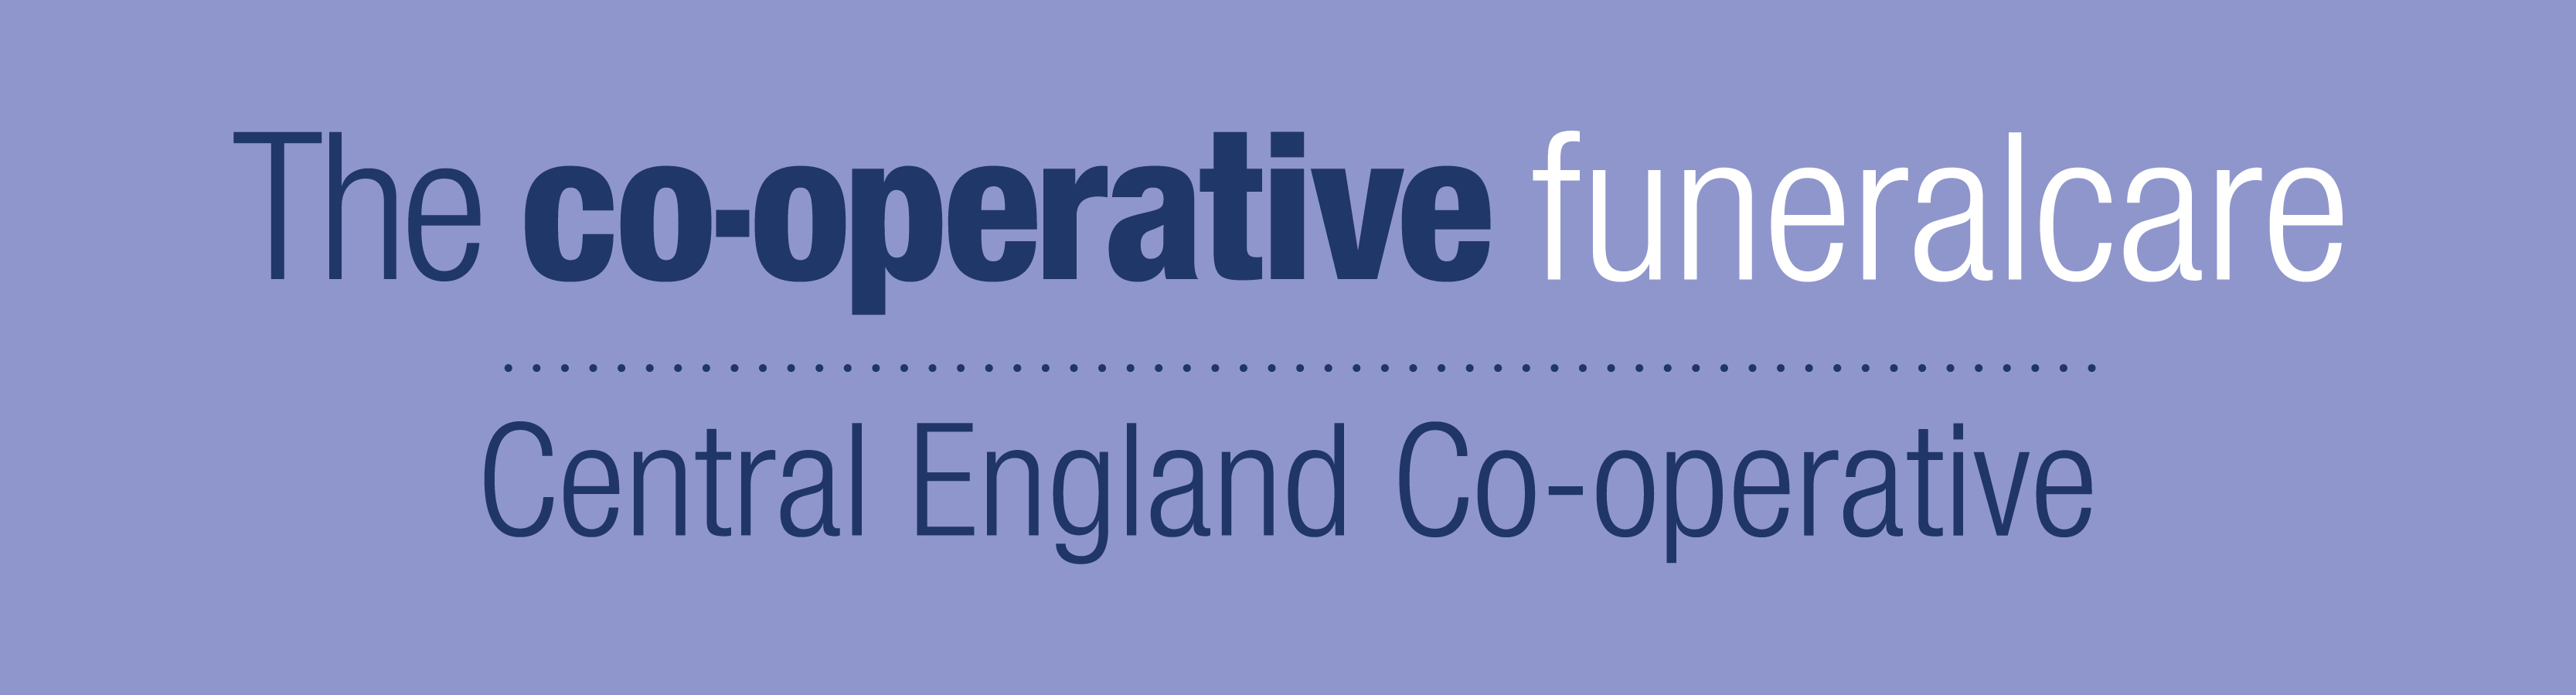 Central England Co-operative Funeralcare scoop £1000 prize for Dementia UK!